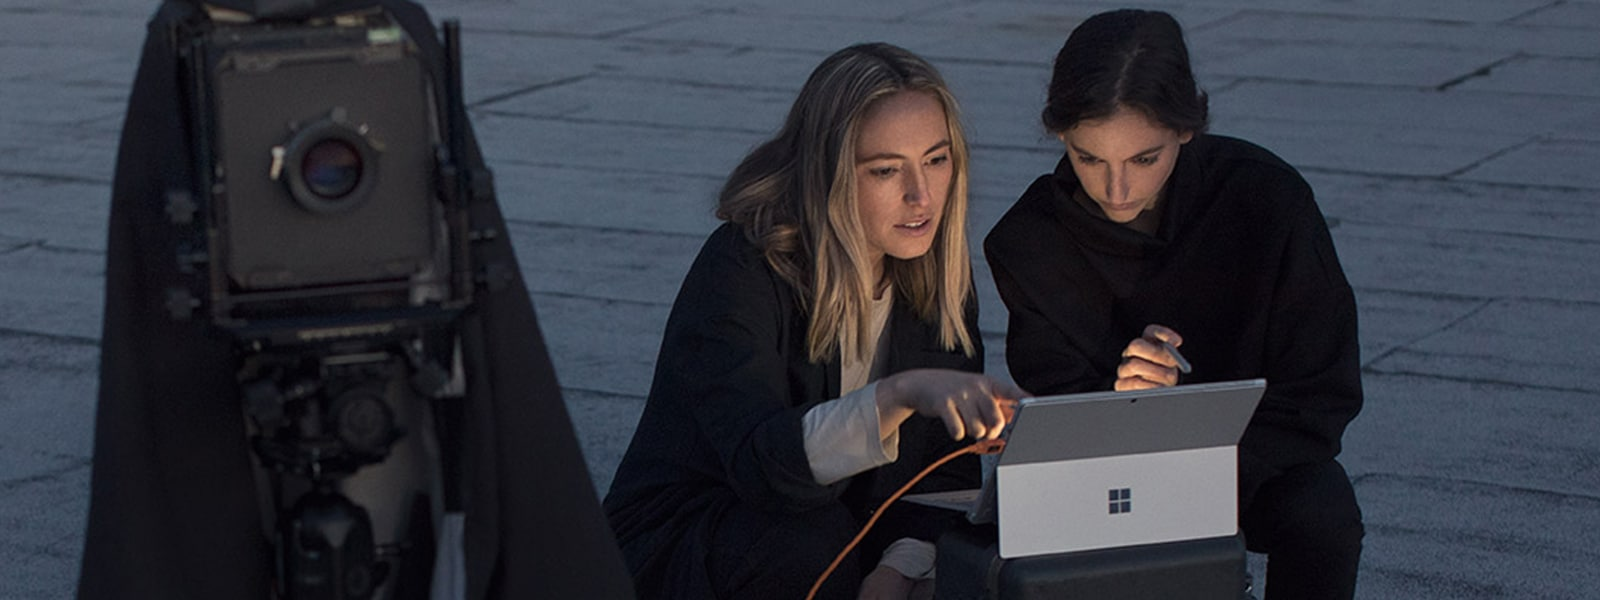 Two women shooting video and editing it on their Surface Pro